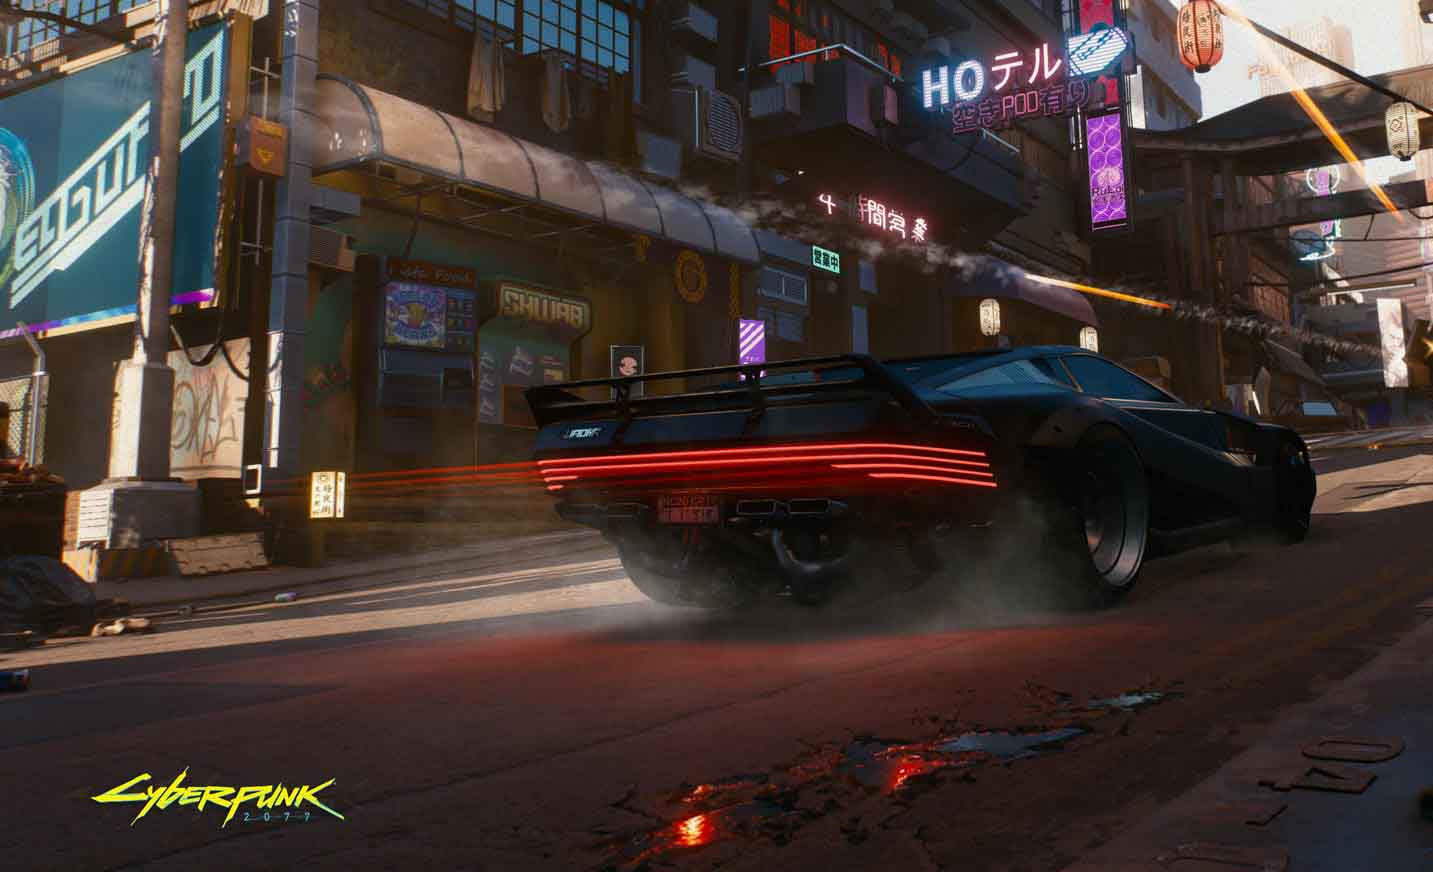 Cyberpunk 2077: How to Find Mortal Kombat and GTA San Andreas Easter Egg